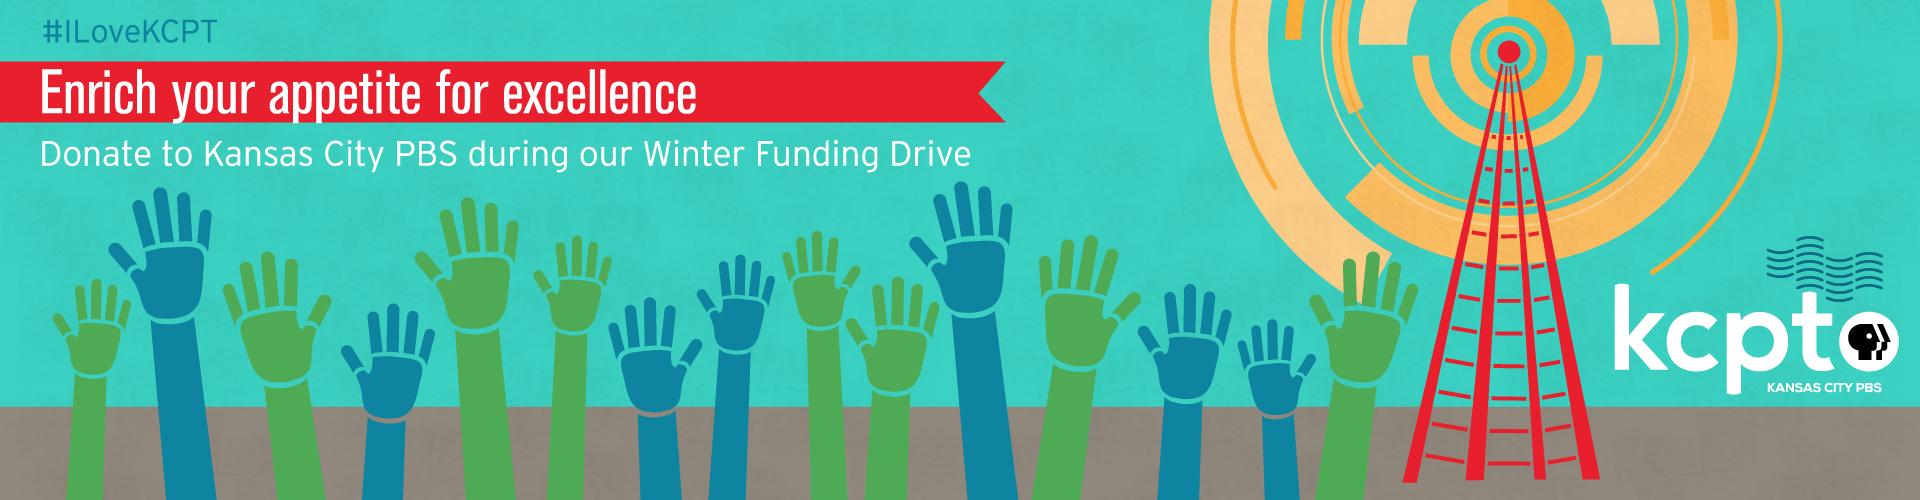 #ILoveKCPT - Enrich your appetite for excellence - donate to Kansas City PBS during our Winter Funding Drive